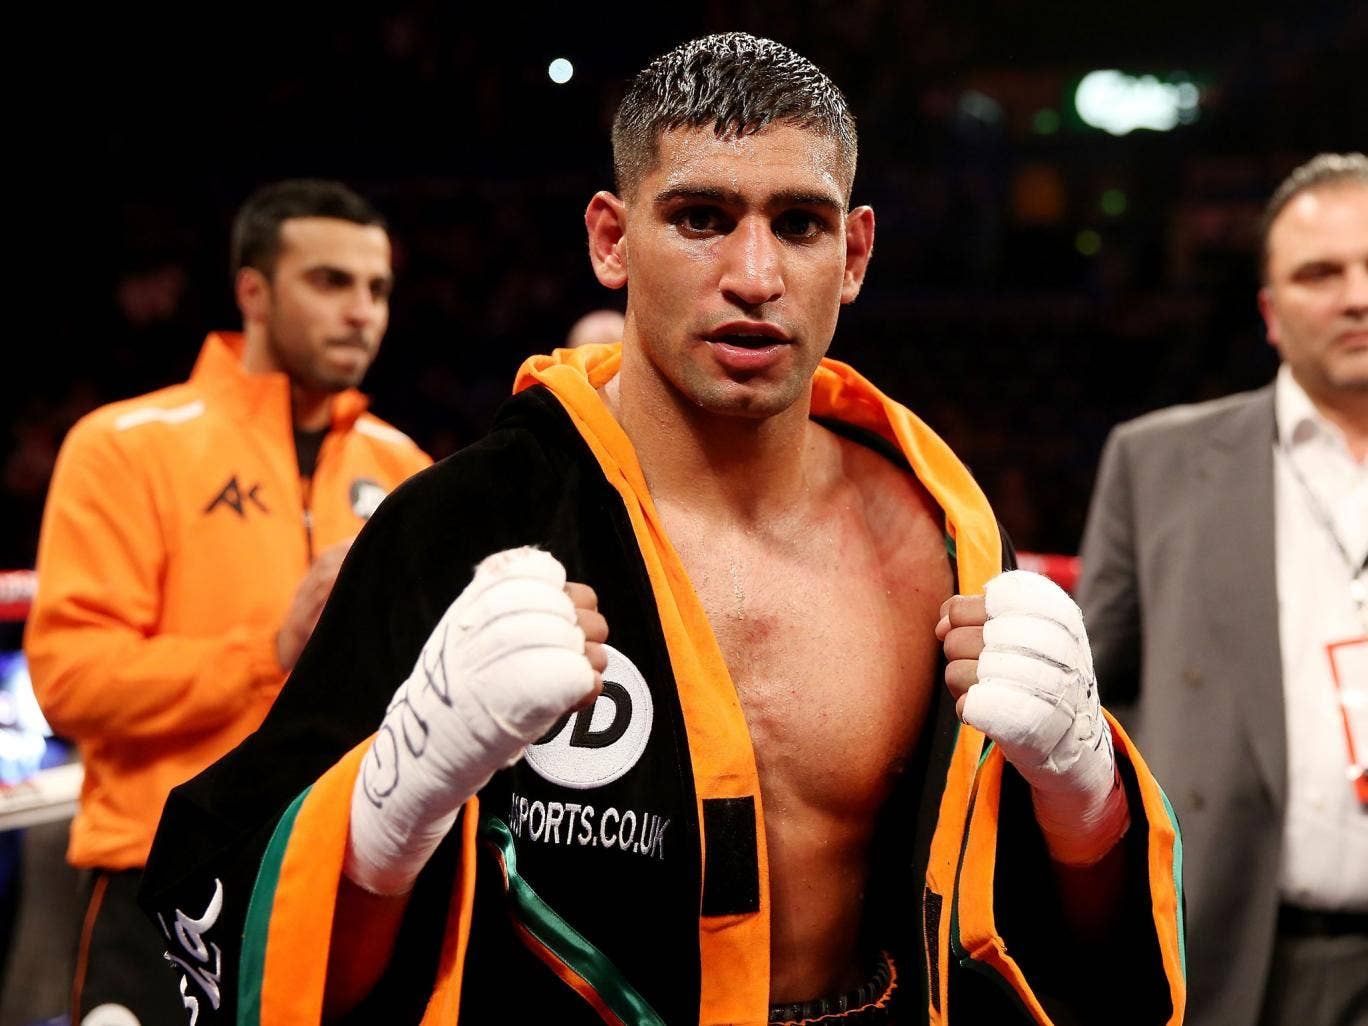 Amir Khan will find out in the next two weeks if he has secured a fight with Floyd Mayweather